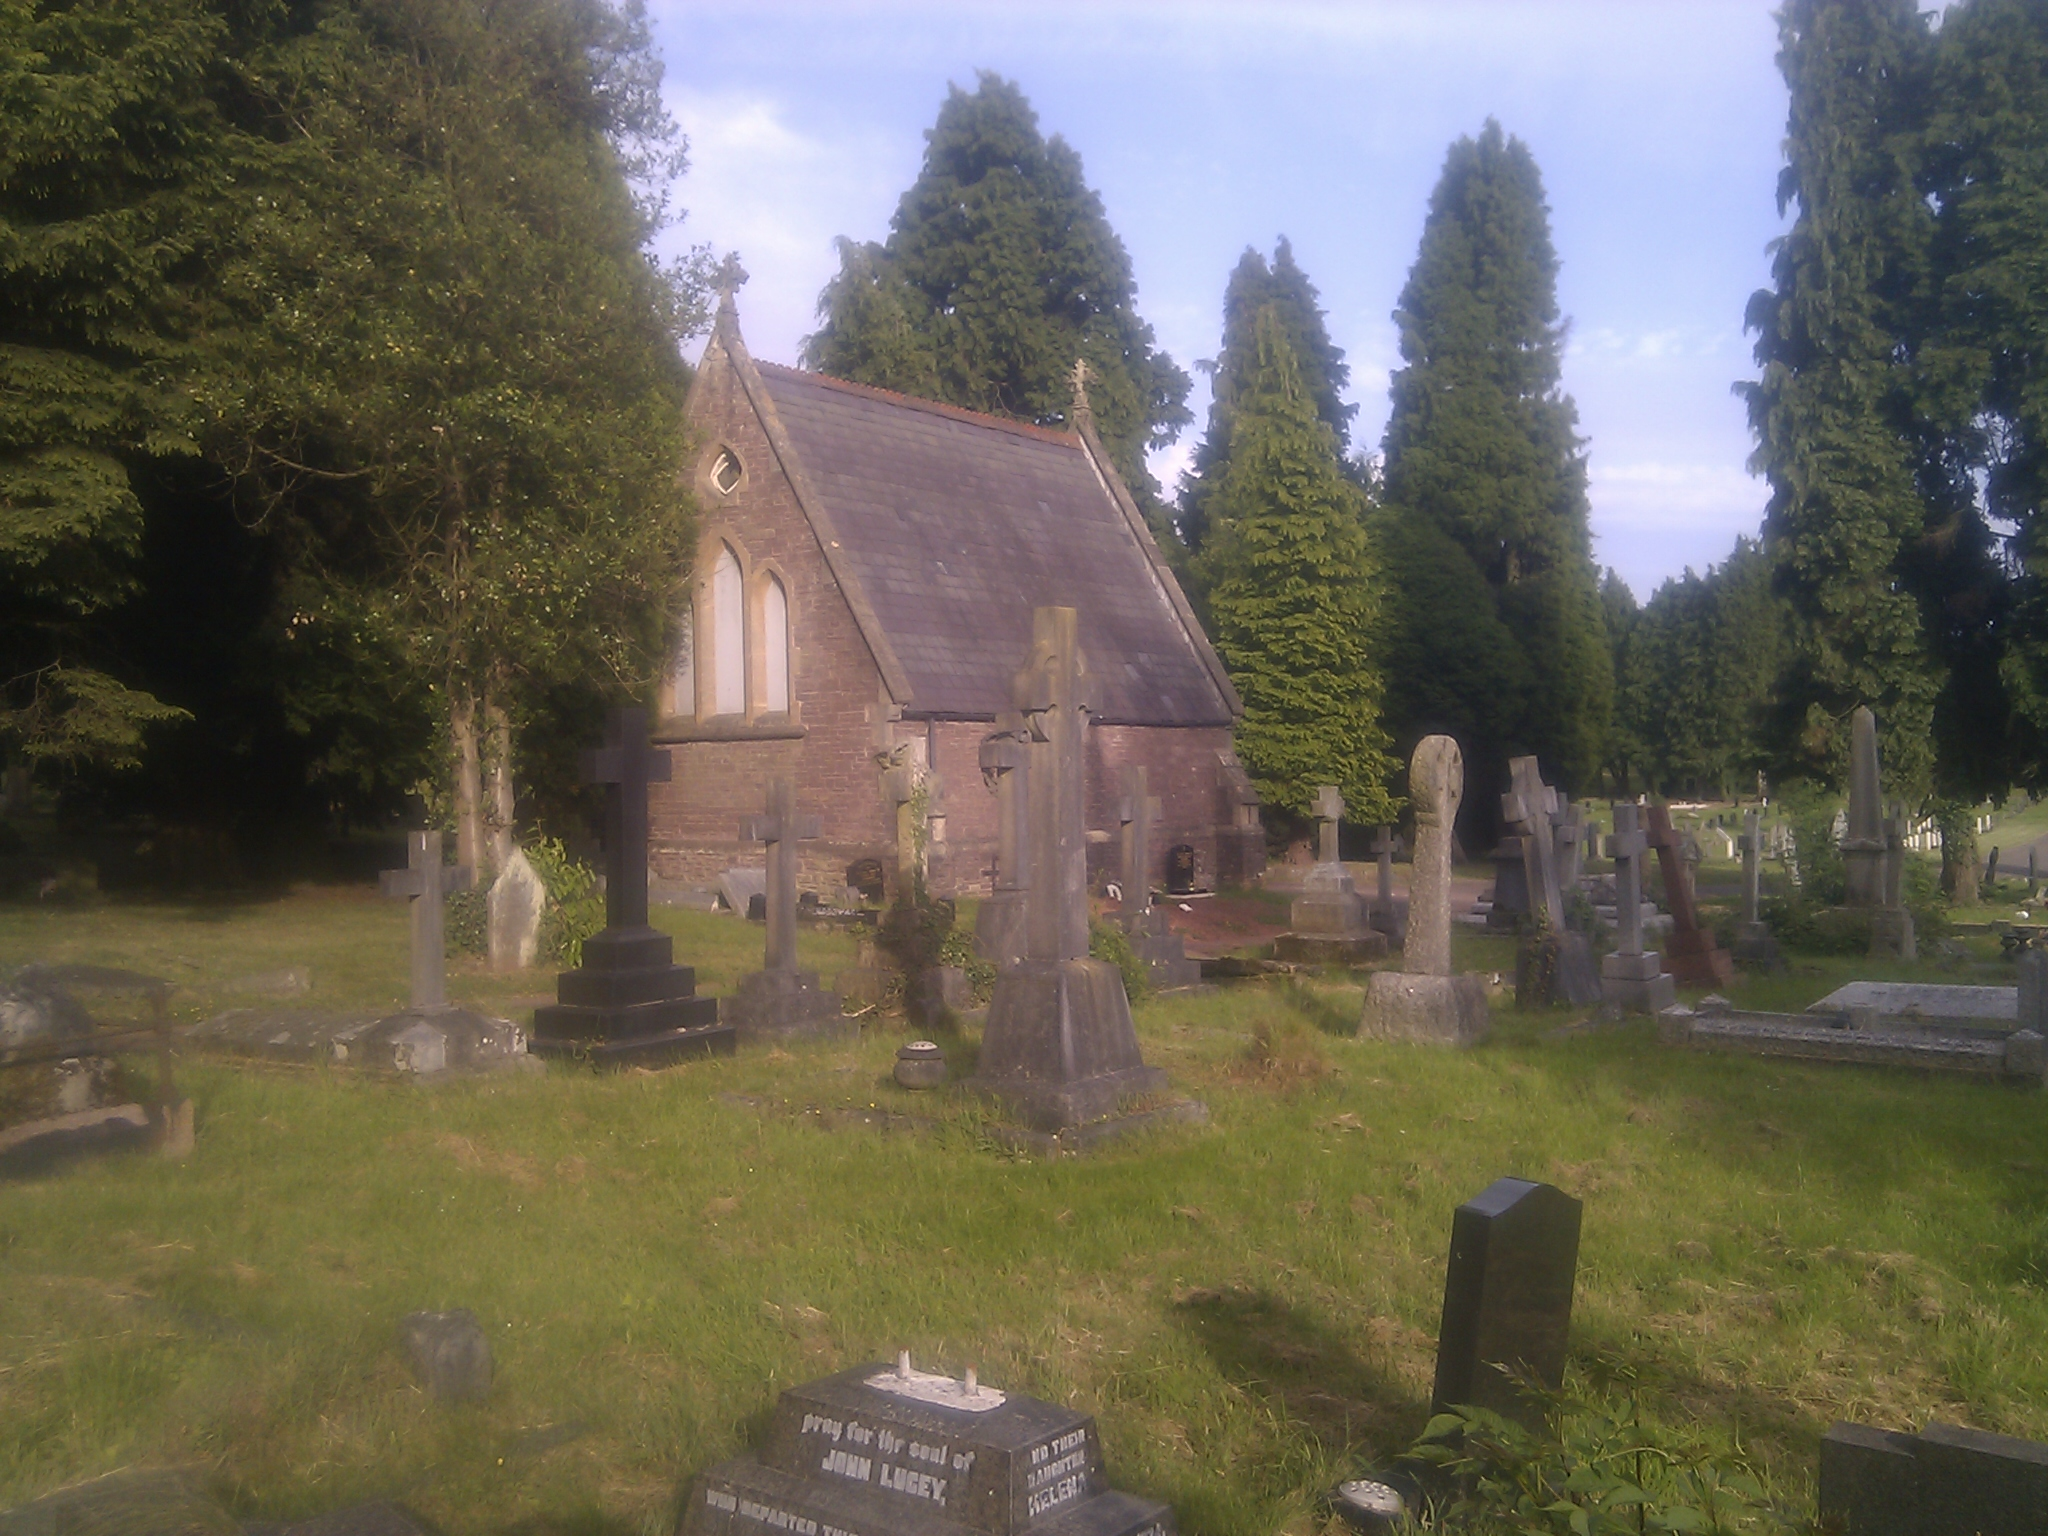 Roman_Catholic_chapel_in_St_Woolos_Cemetery,_Newport